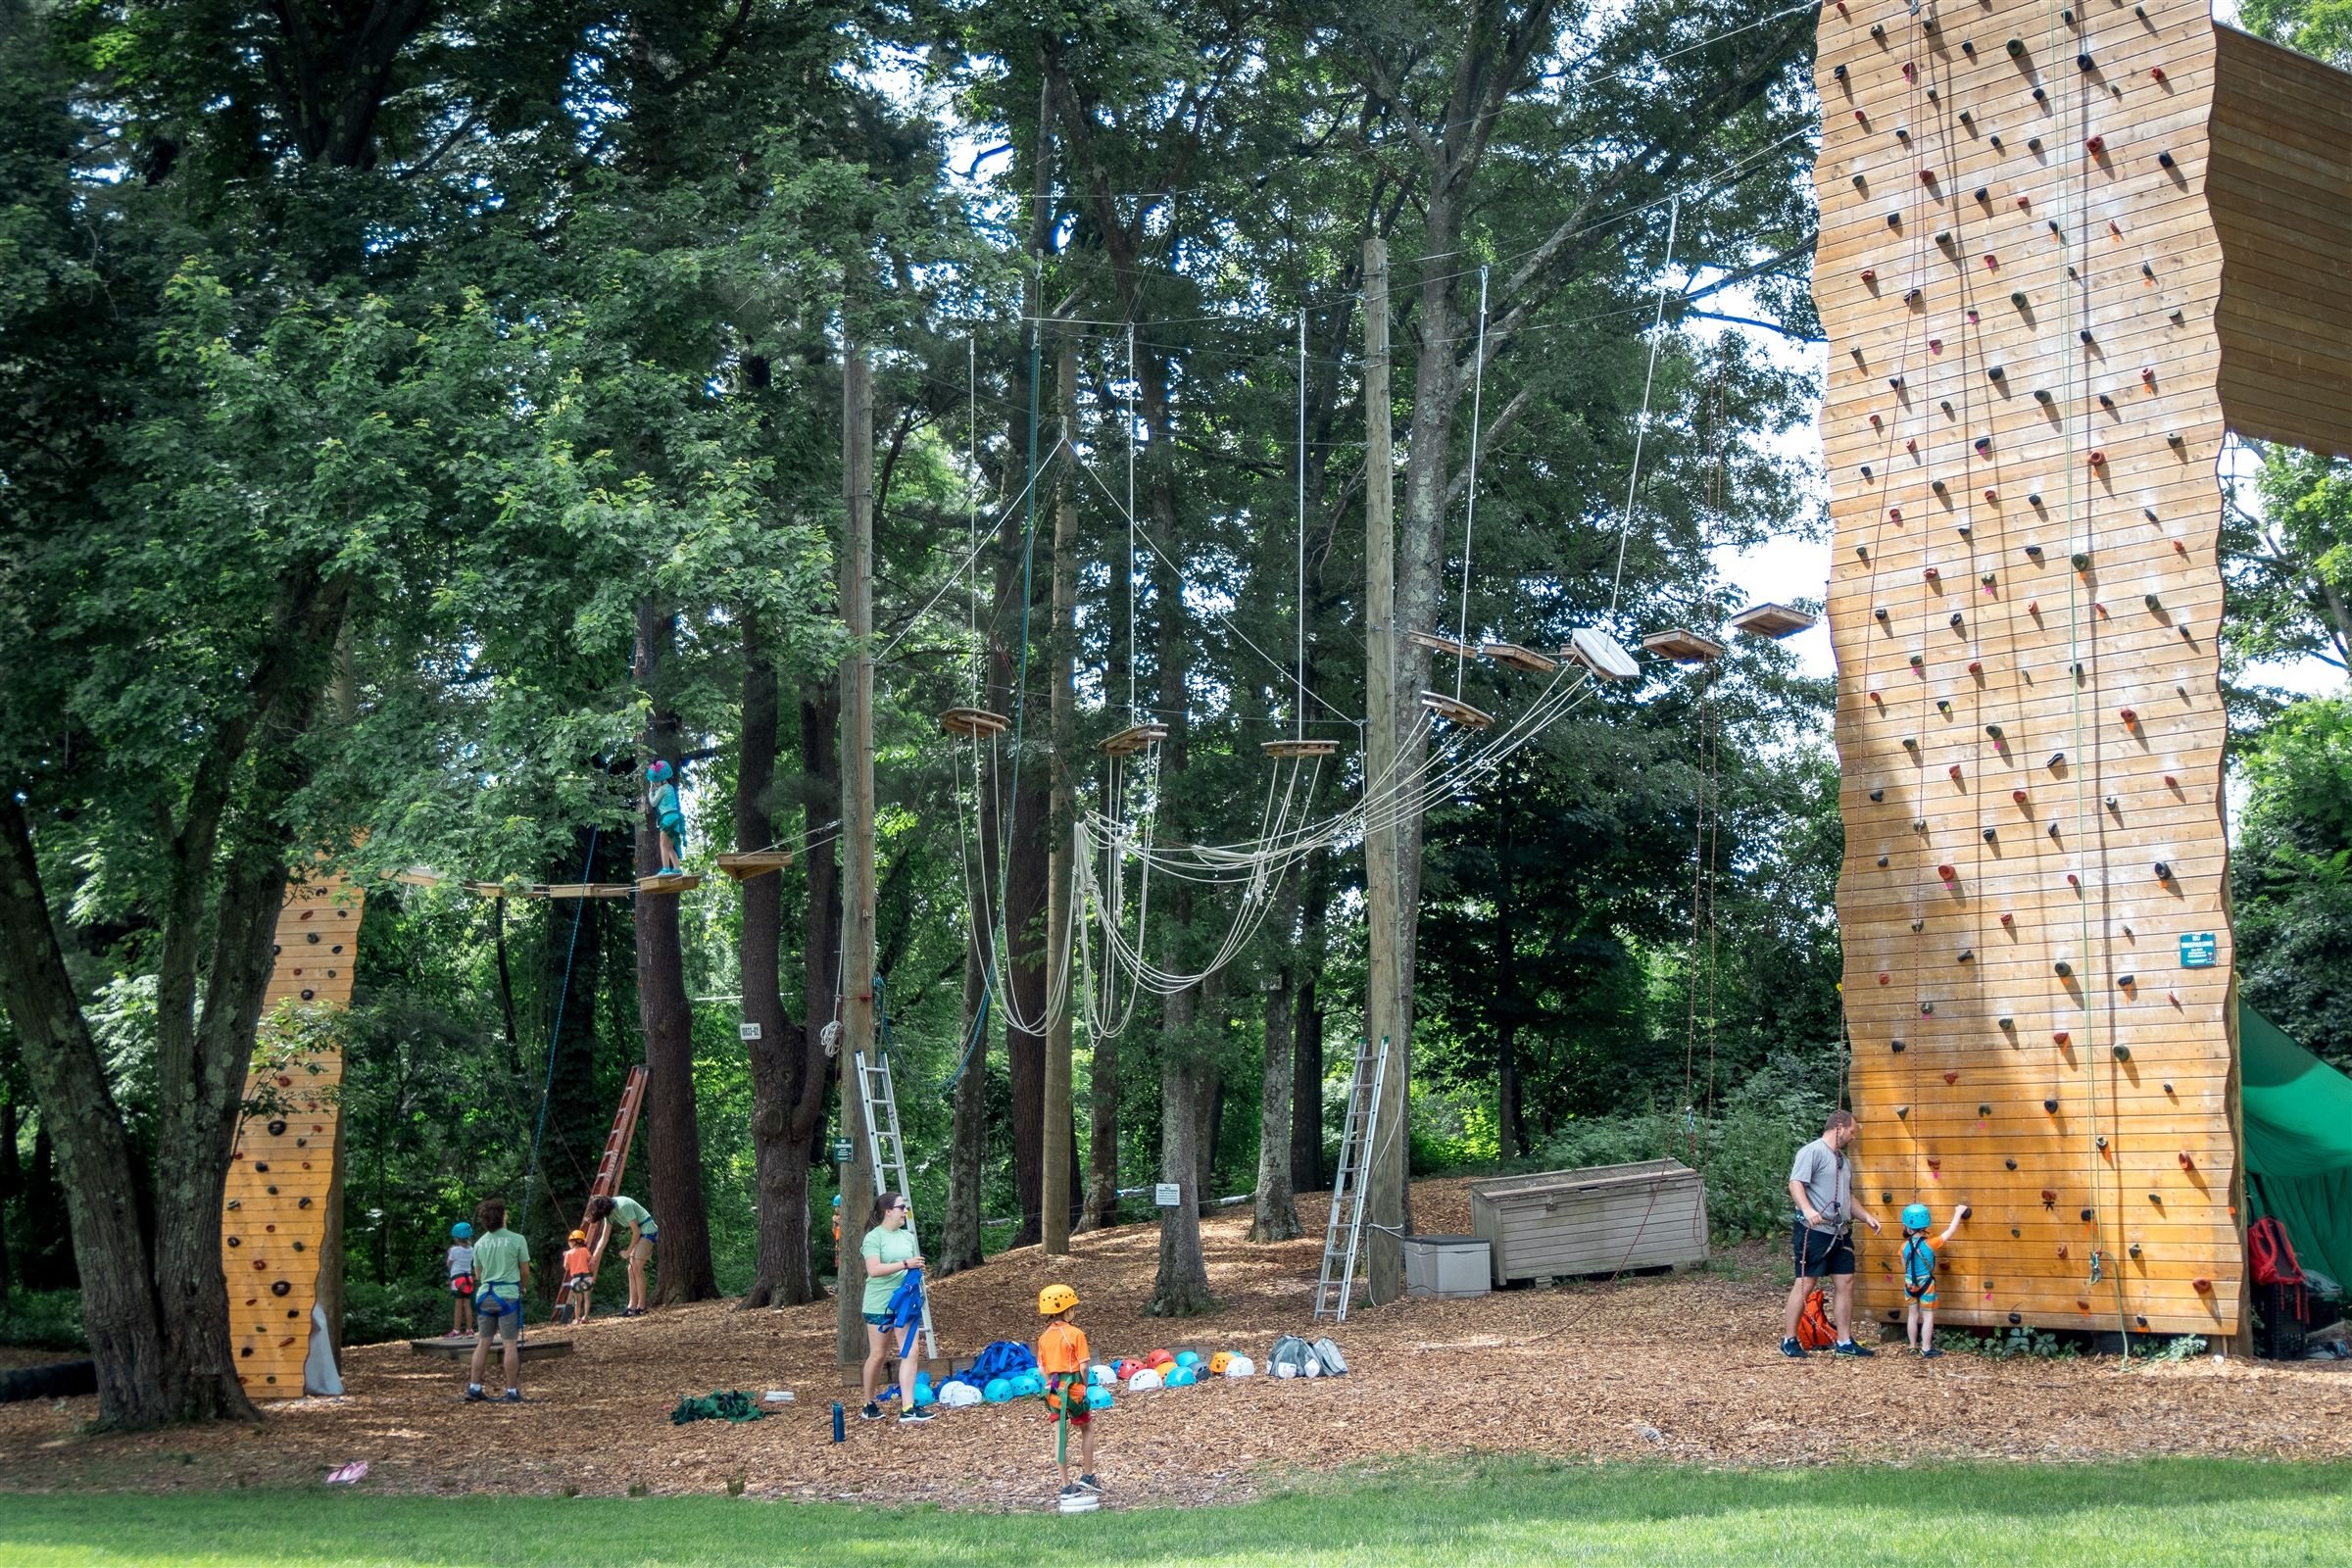 Our adventure course, located in a wooded corner of campus near the Sudbury Reservoir, includes high ropes and low ropes, a 37-foot climbing tower, and a new 12-foot climbing element for our youngest campers that was installed in 2018.